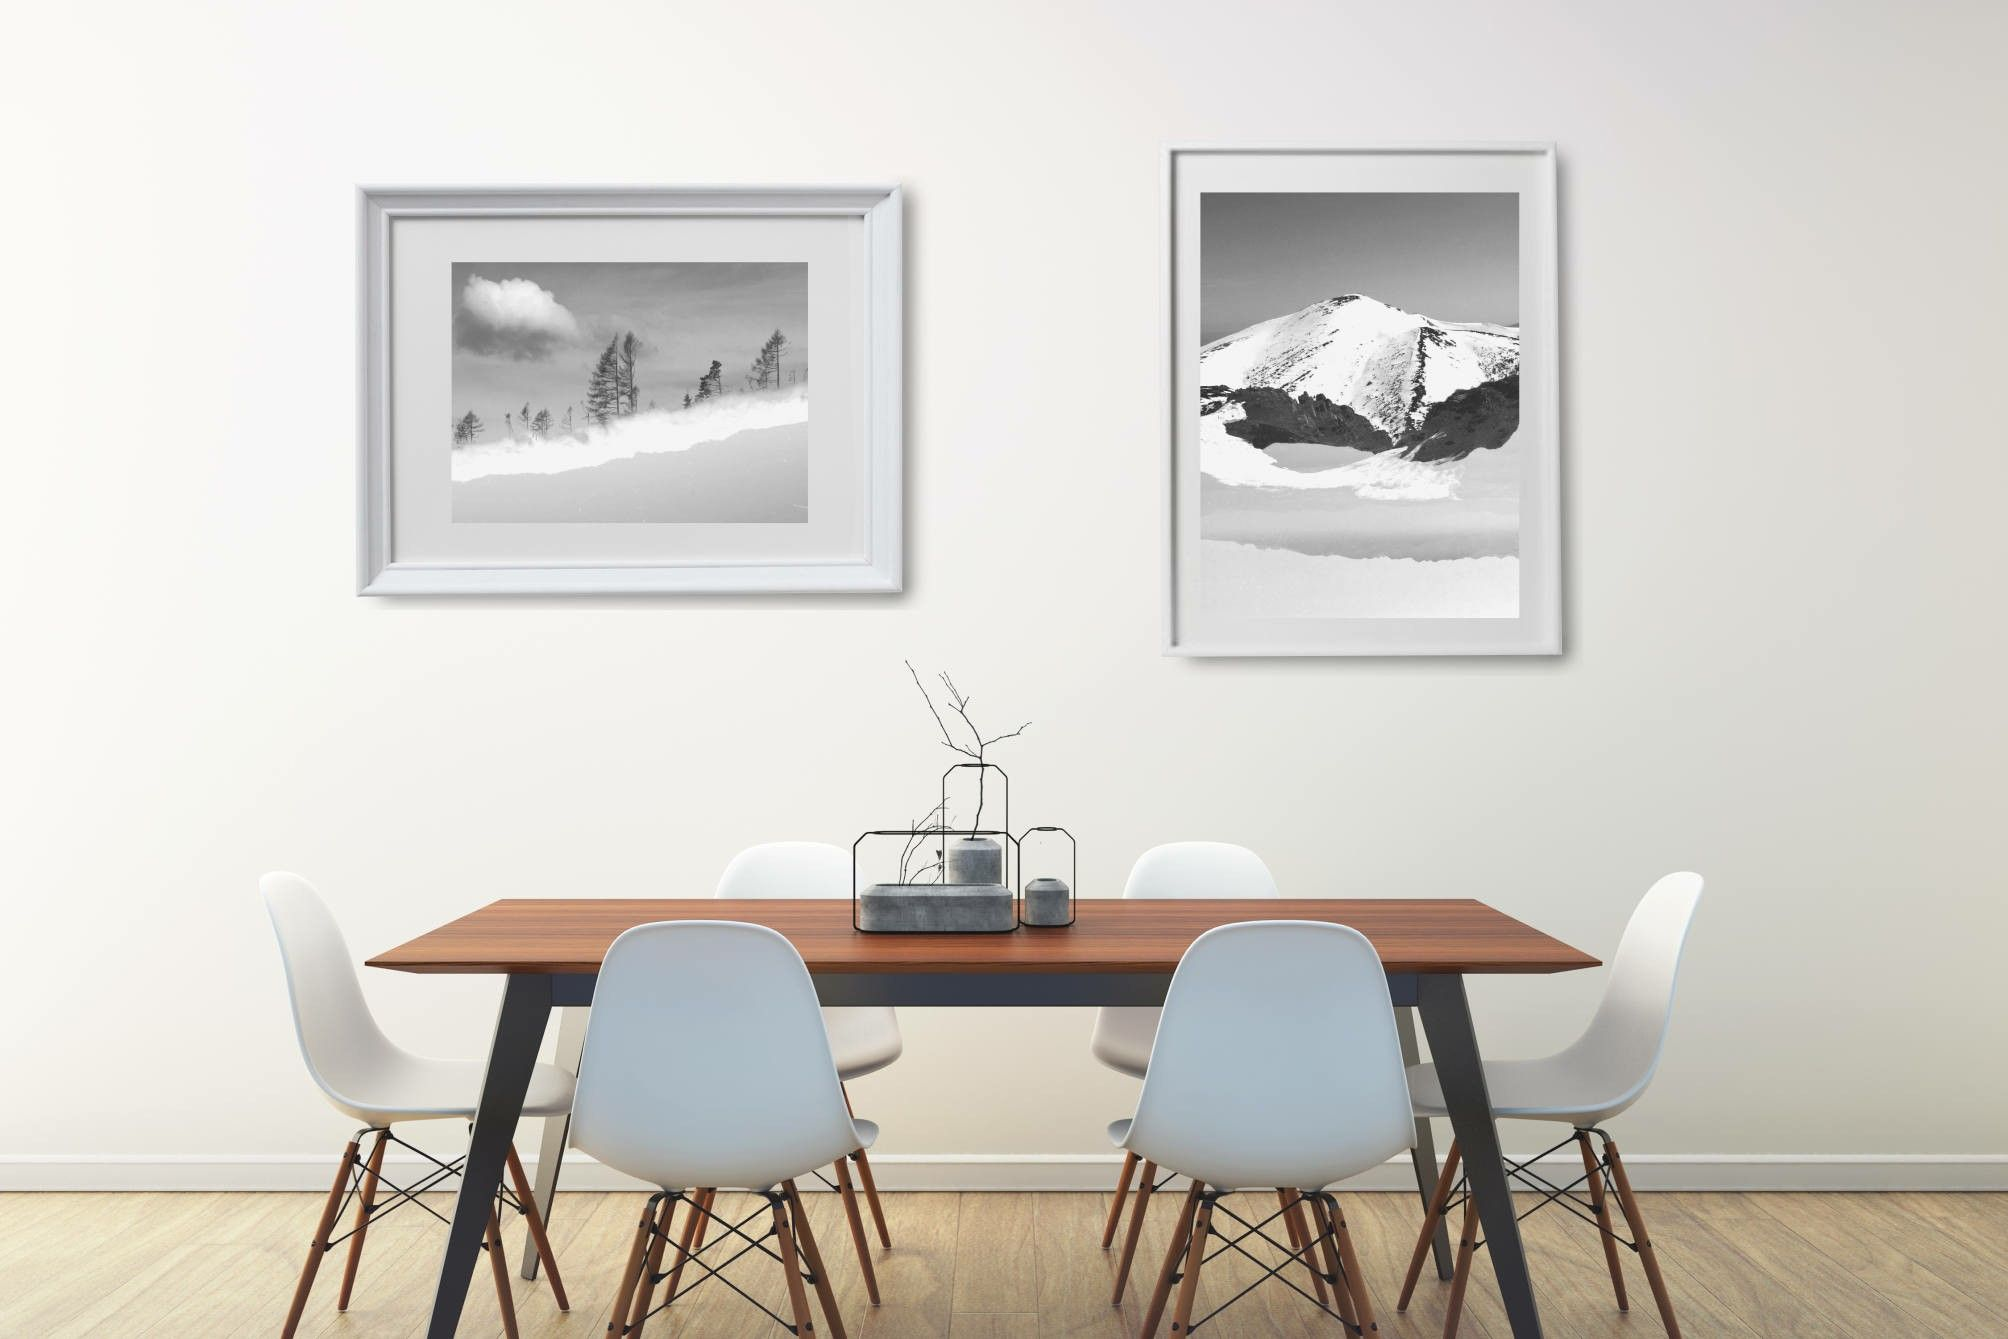 Minimalist Dining Room With Black And White Natureinspired Wall Mesmerizing Wall Art For A Dining Room 2018